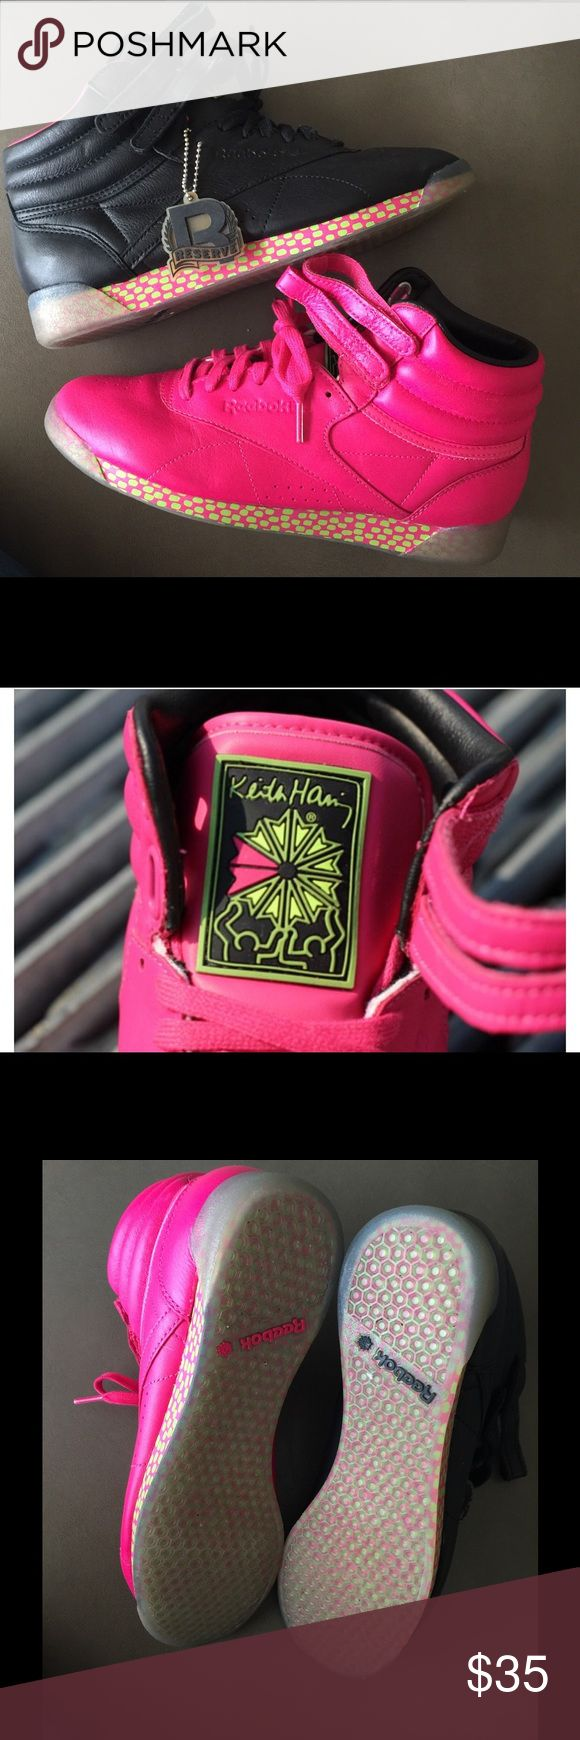 Limited Edition Keith Haring High top Reeboks These limited edition sneakers have a very different look. One shoe is black and one is pink!they I've only wore them once for an 80's party. They have a very comfortable insole. *comes without original box Reebok Shoes